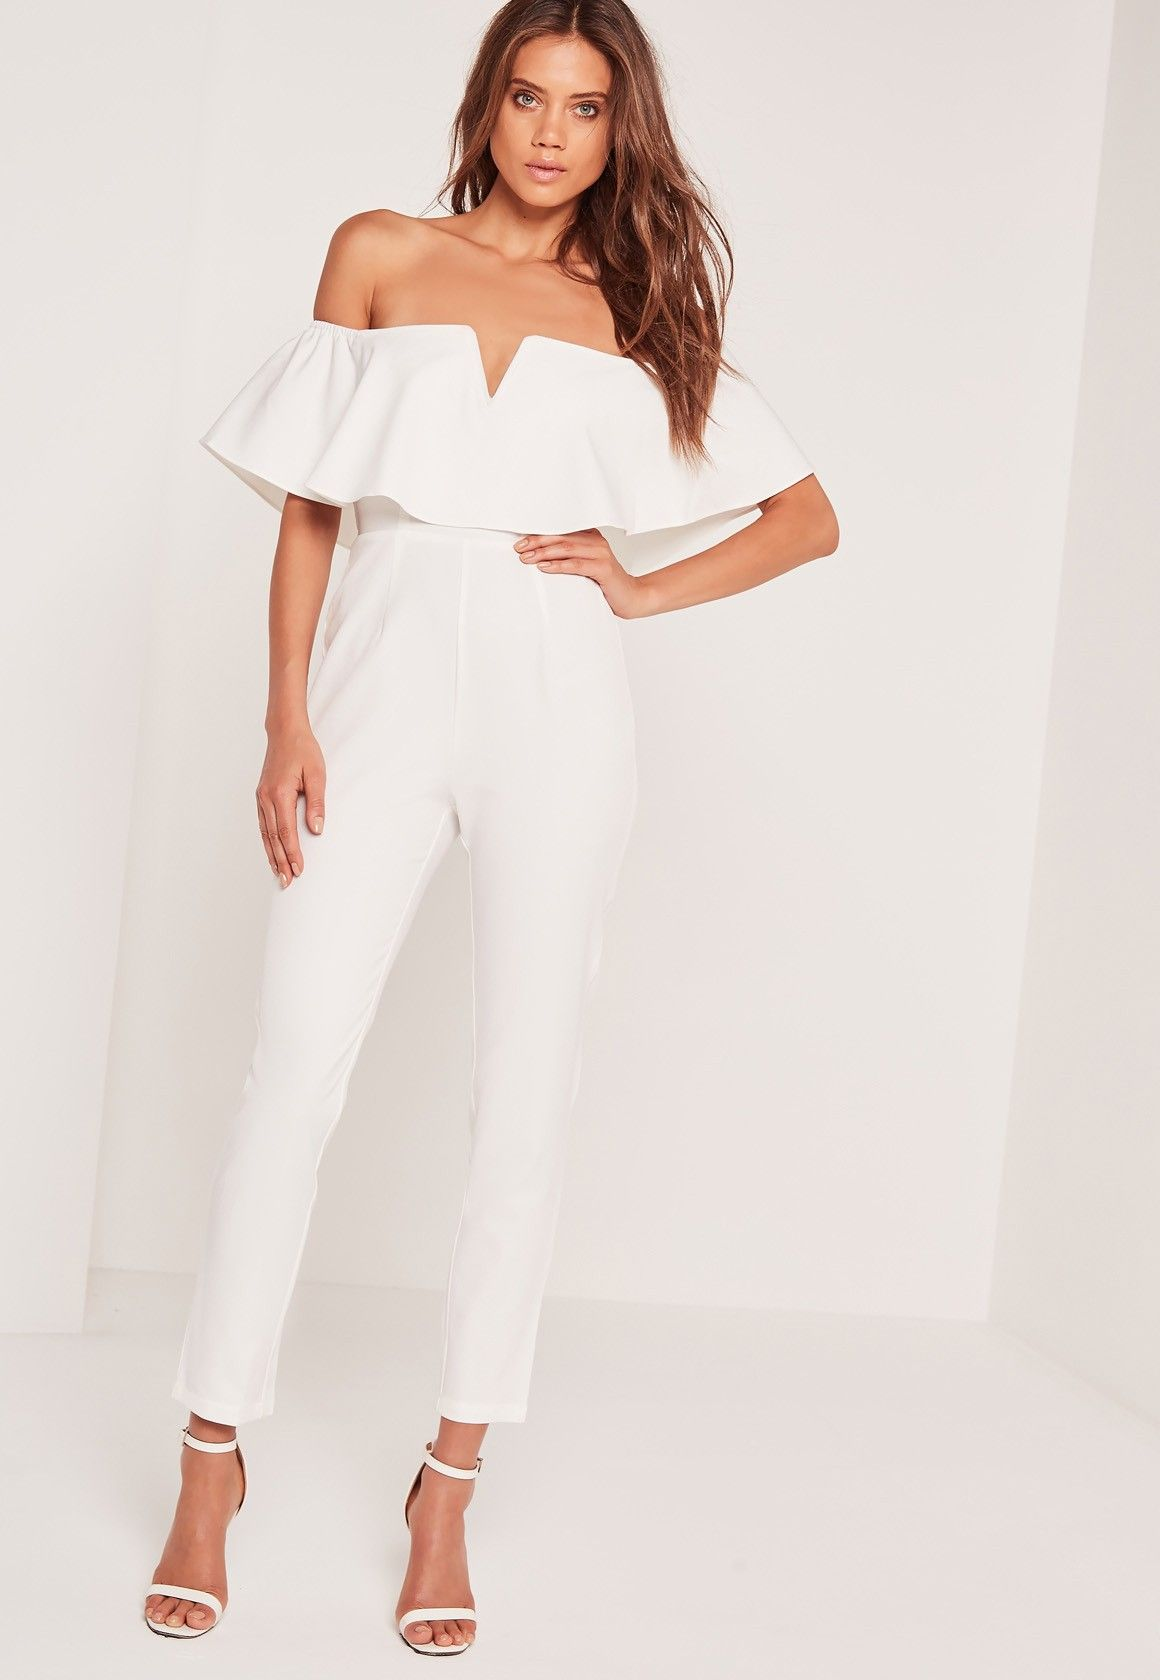 0d705aeedbc Missguided - Crepe Bardot Frill Detail Jumpsuit White